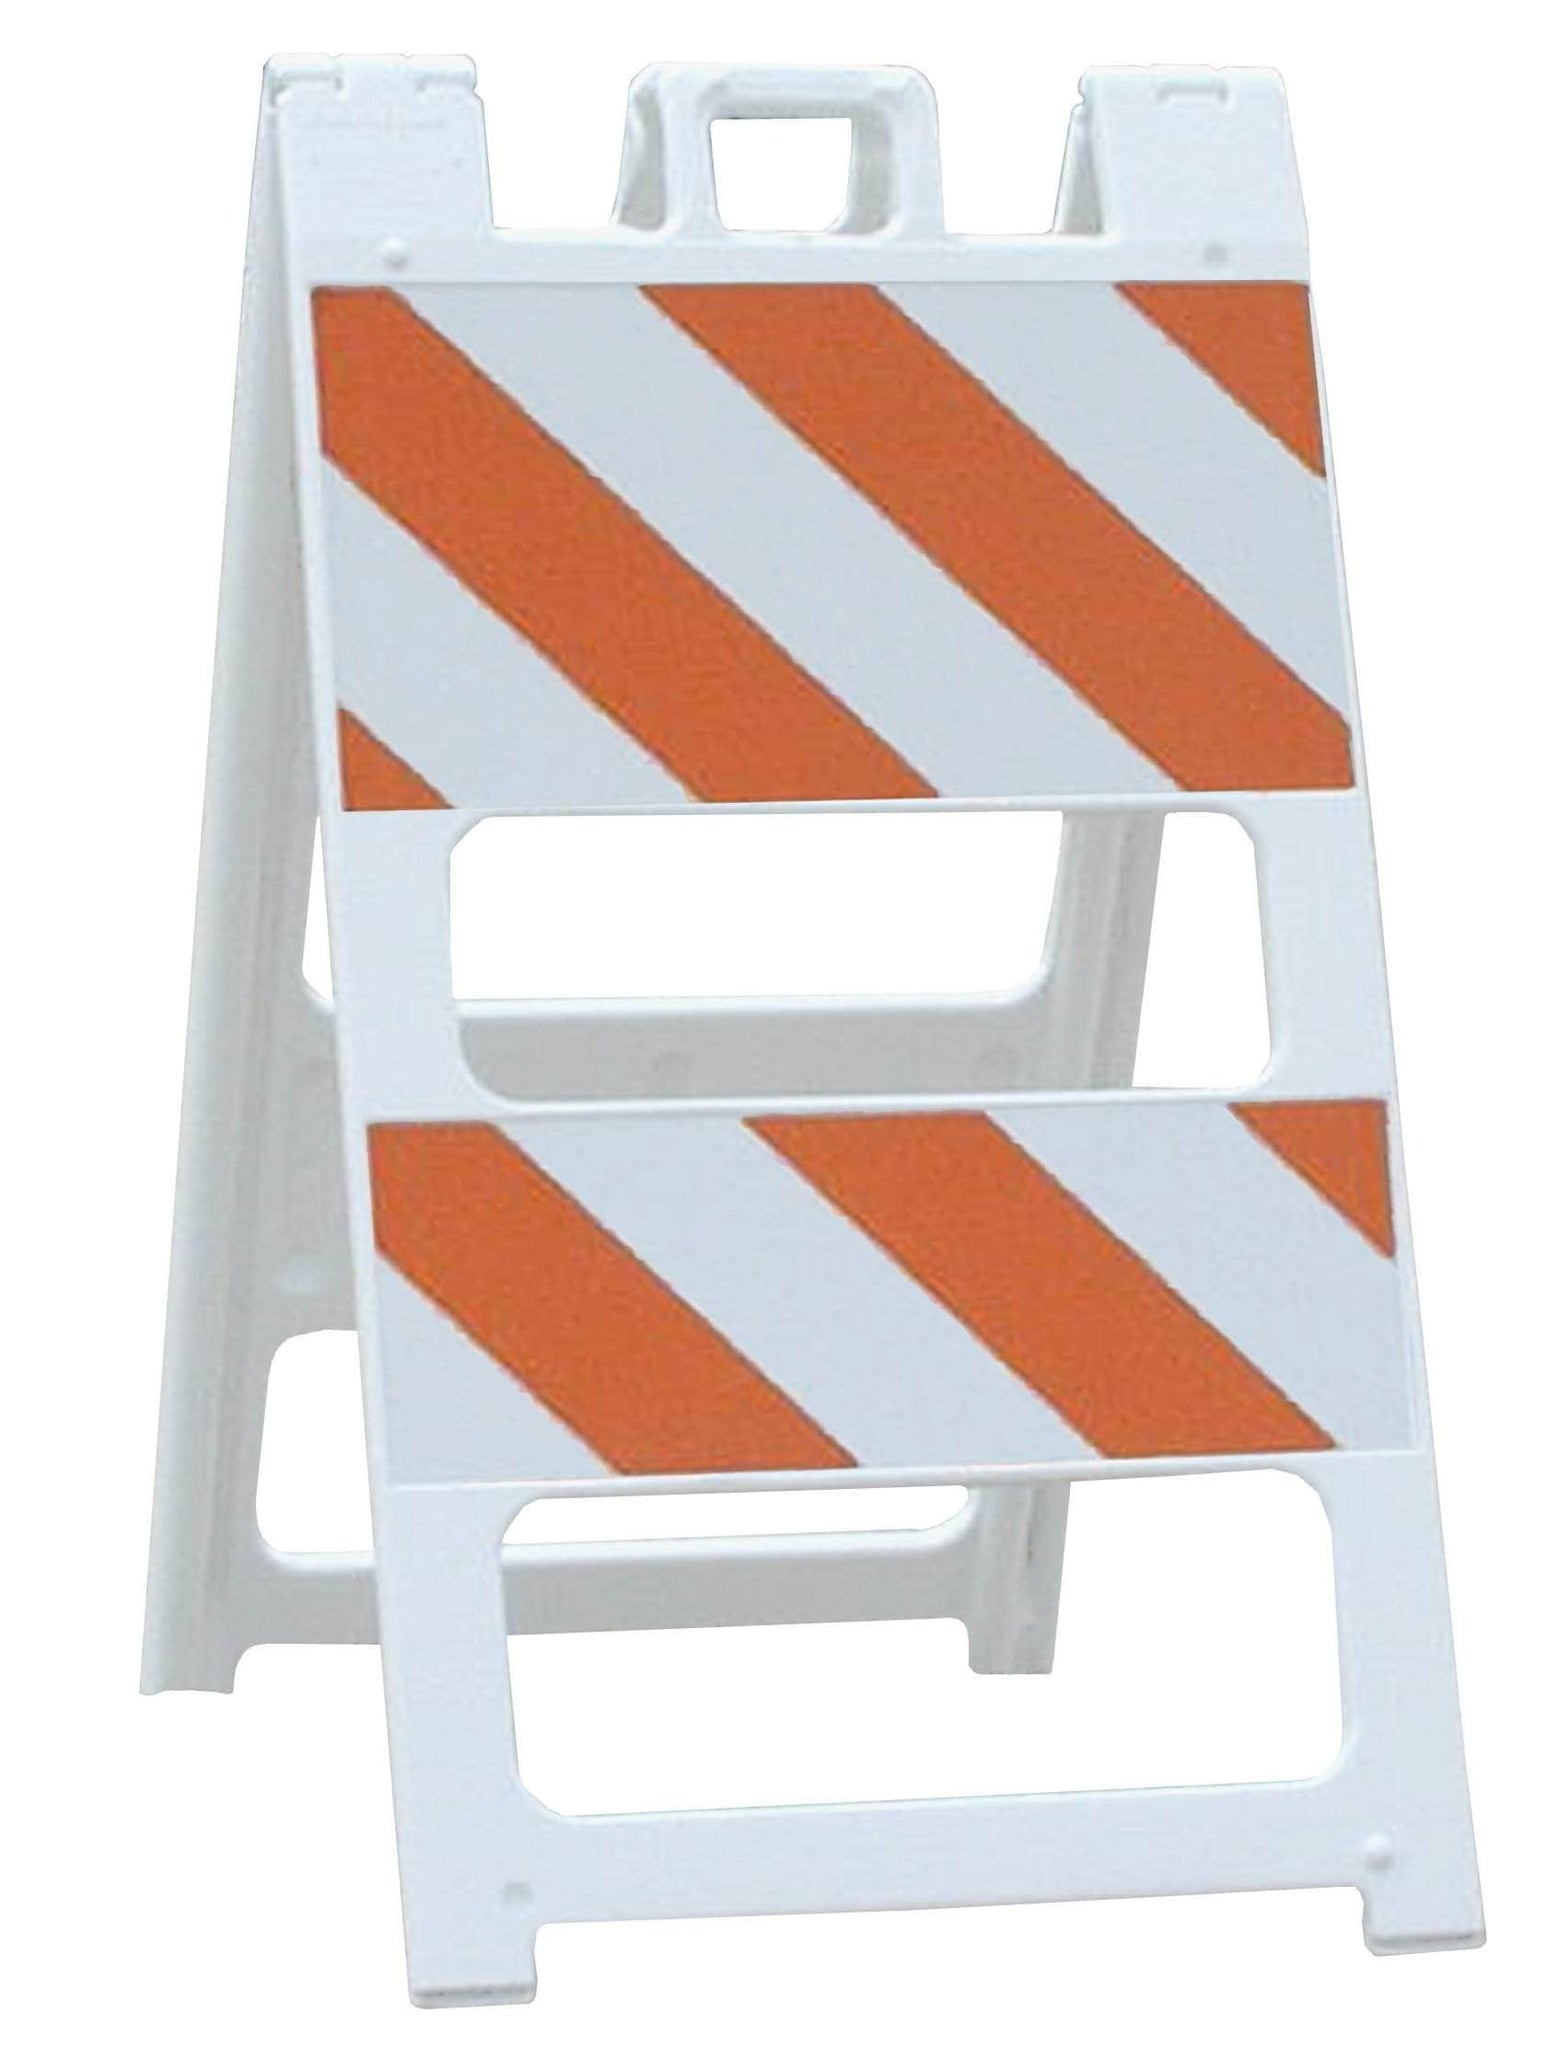 Plasticade Type I and Type II Traffic Barricades – Crowd Control ...